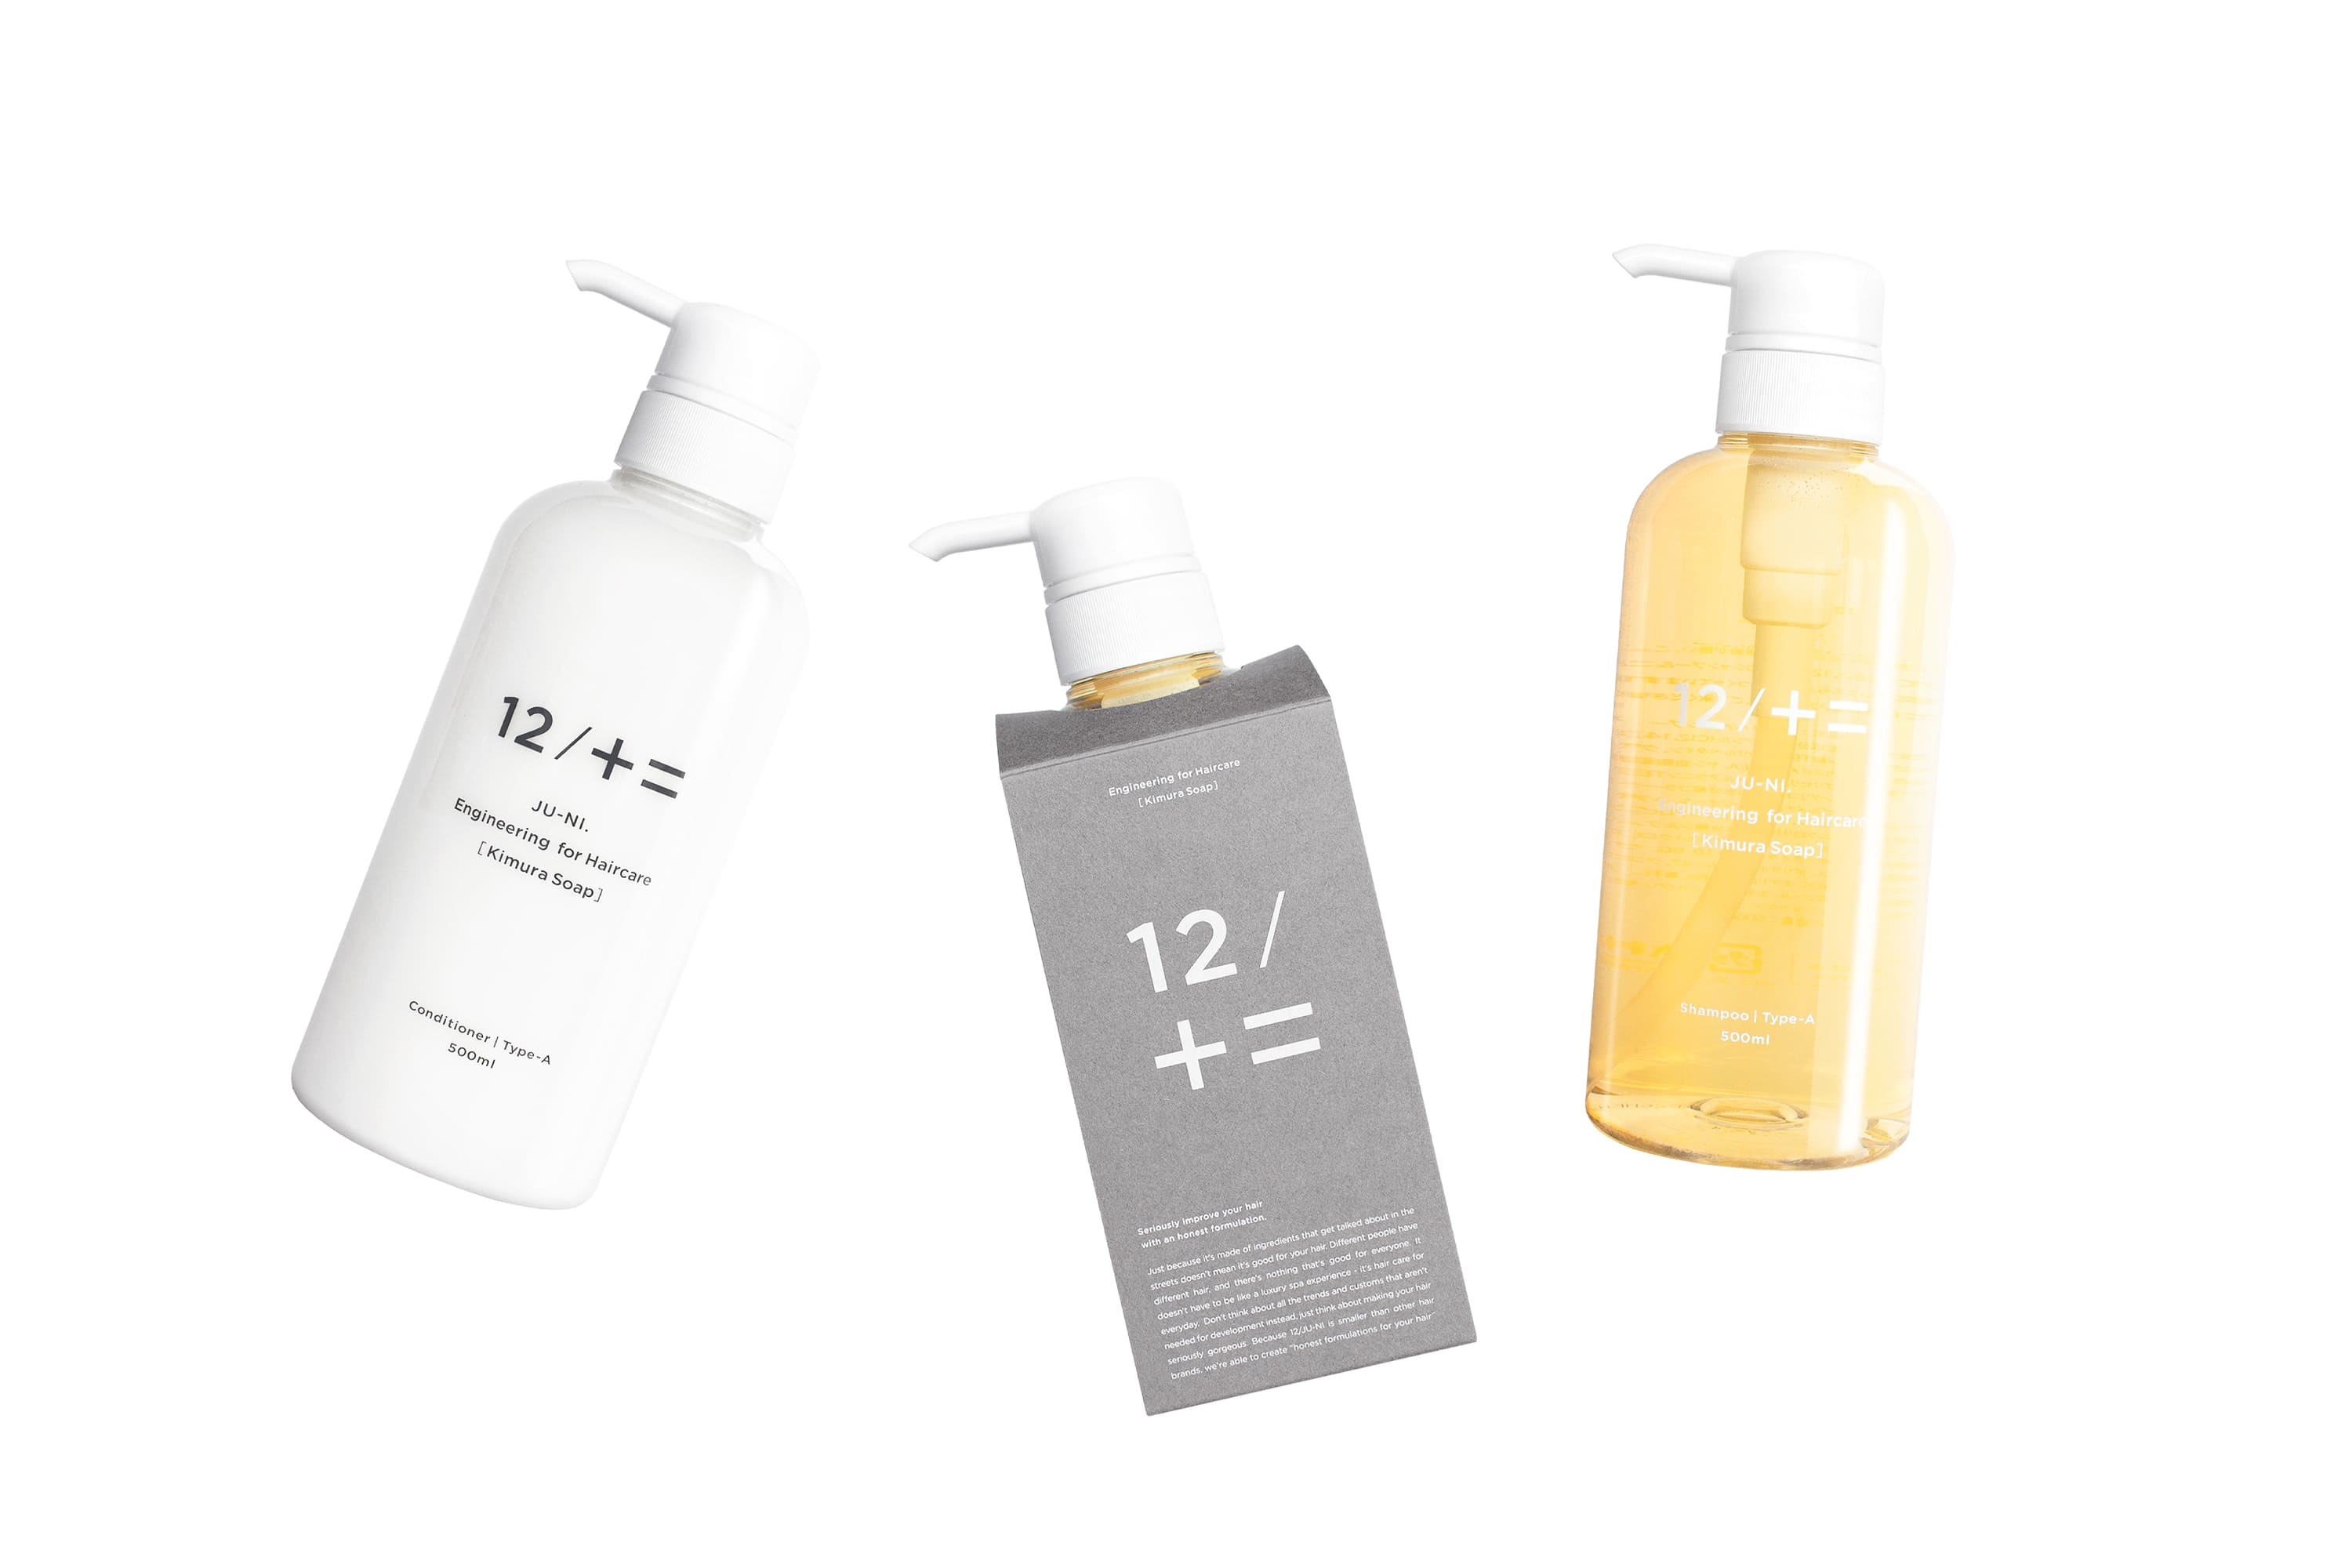 12/JU-NI|Shampoo and conditioner